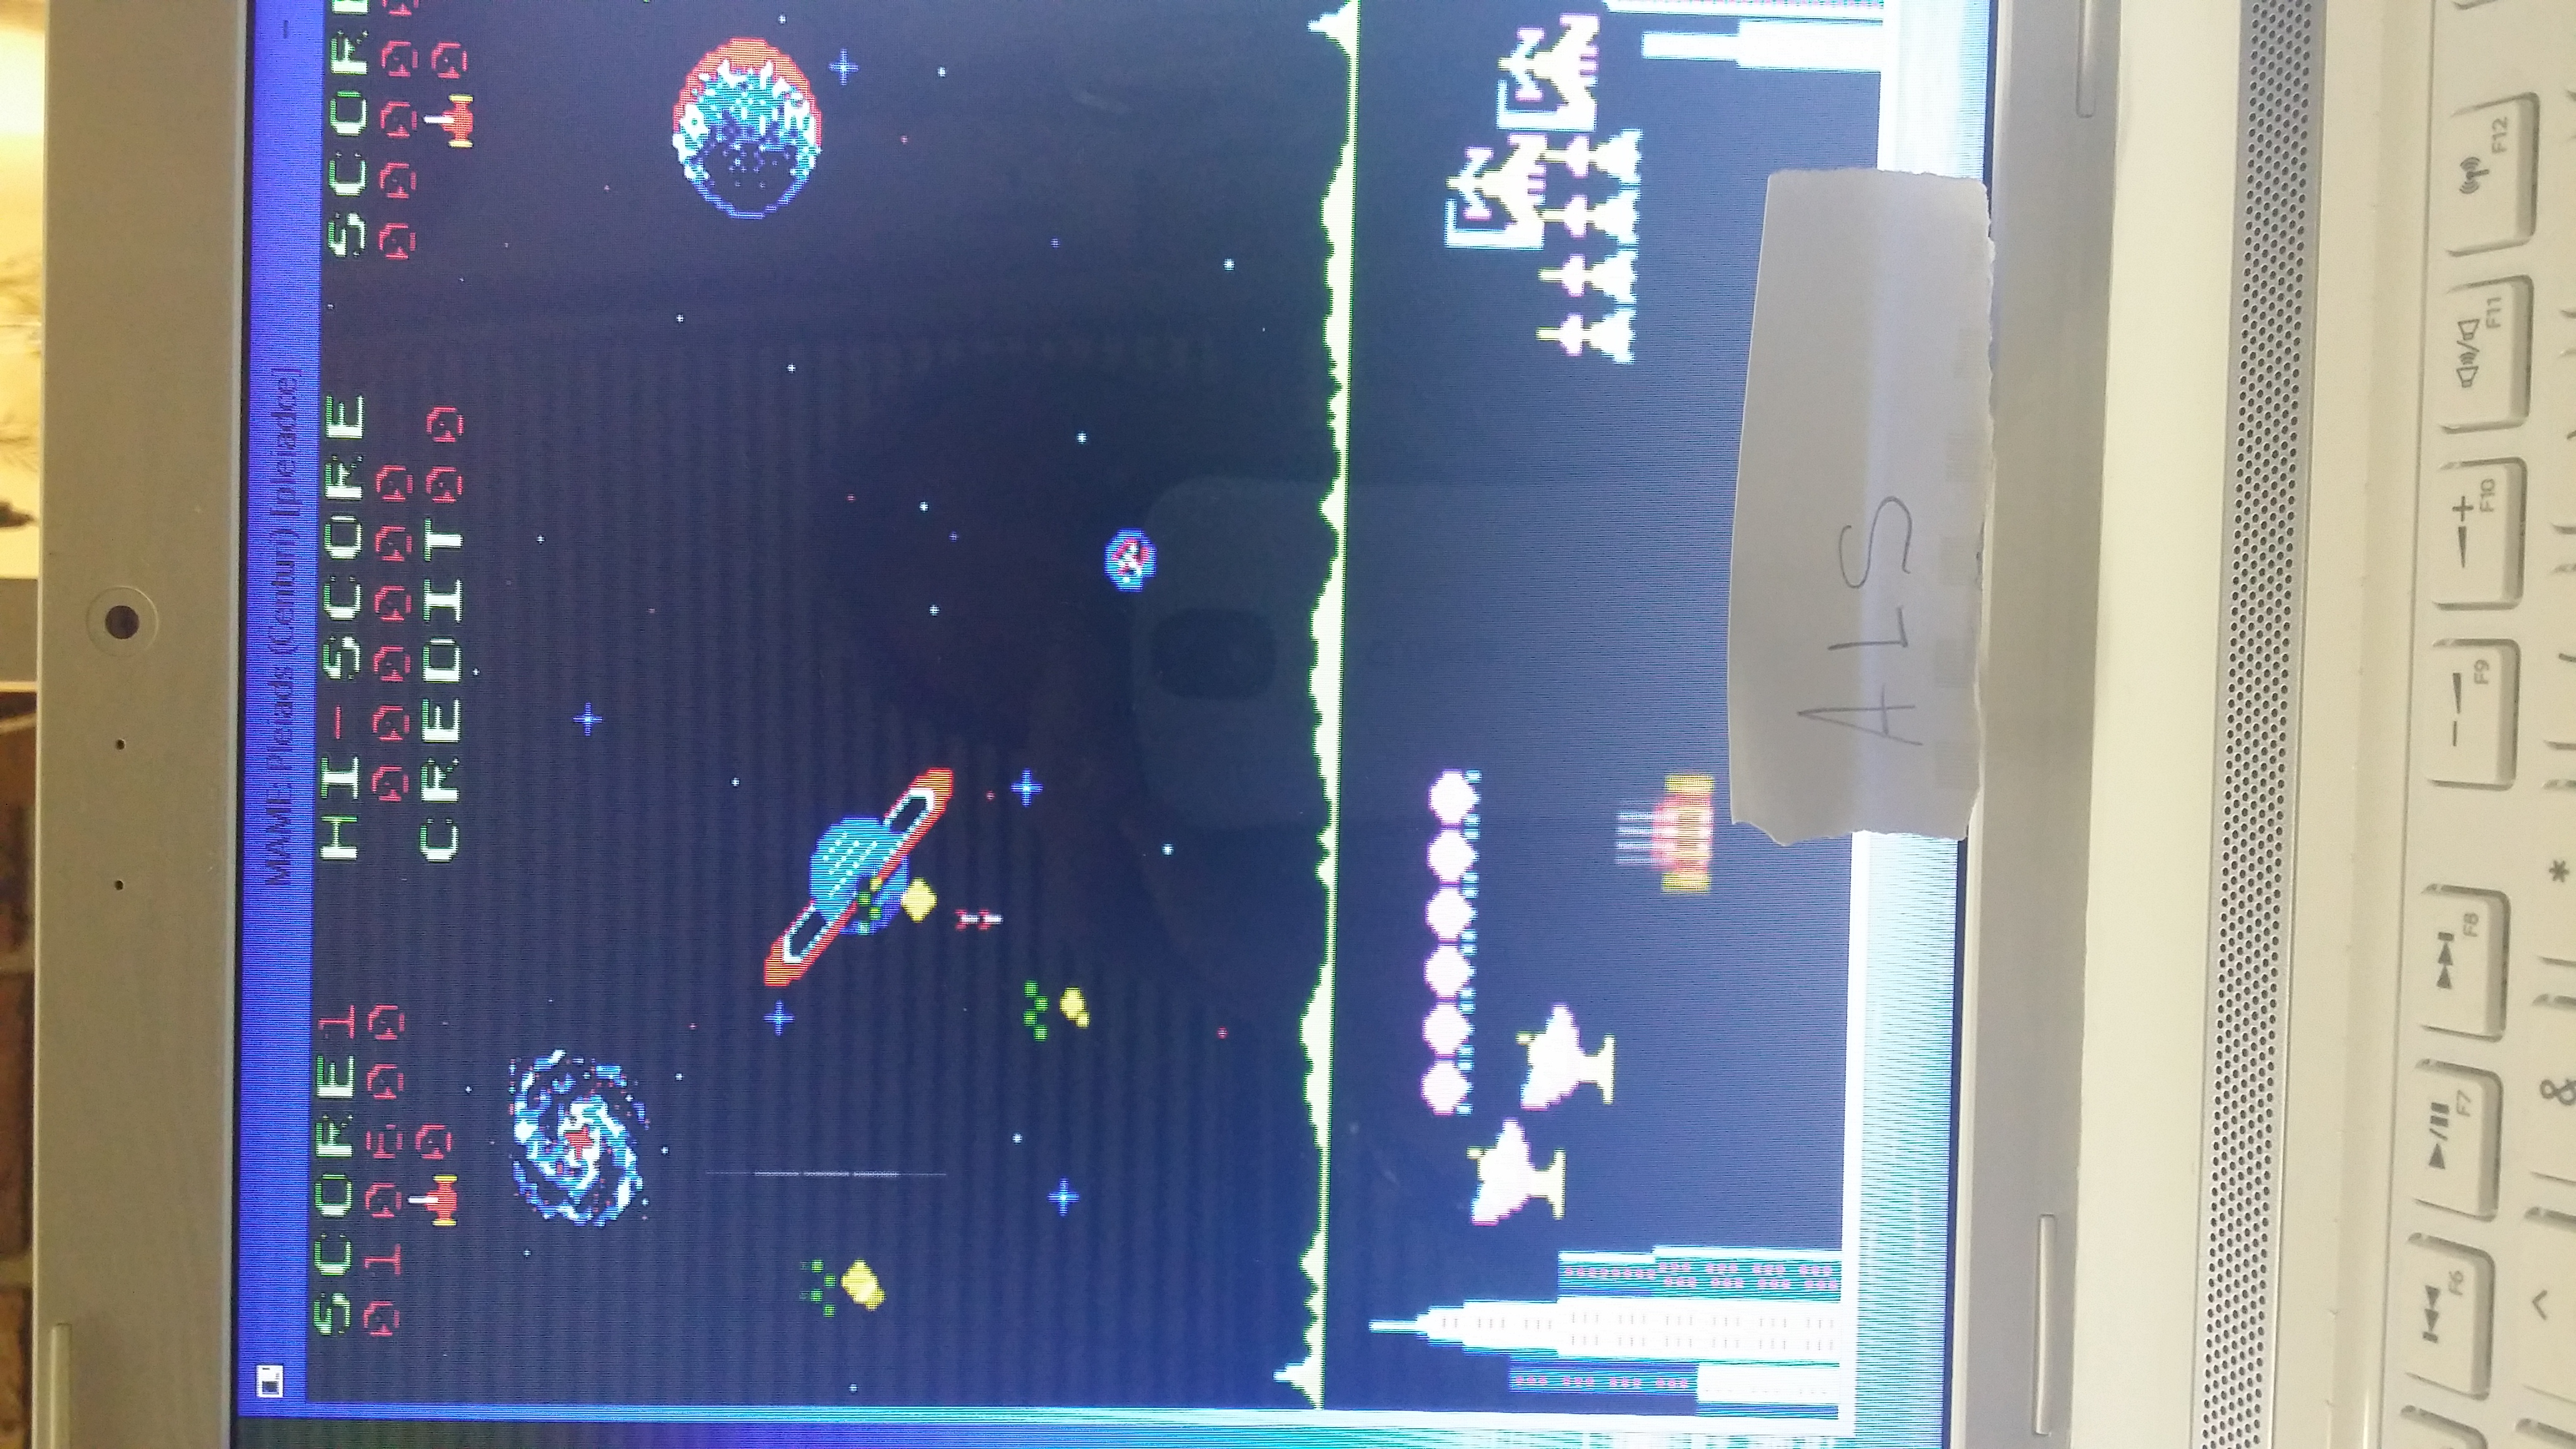 muscleandfitness: Pleiads (Arcade Emulated / M.A.M.E.) 10,600 points on 2014-05-19 08:41:51